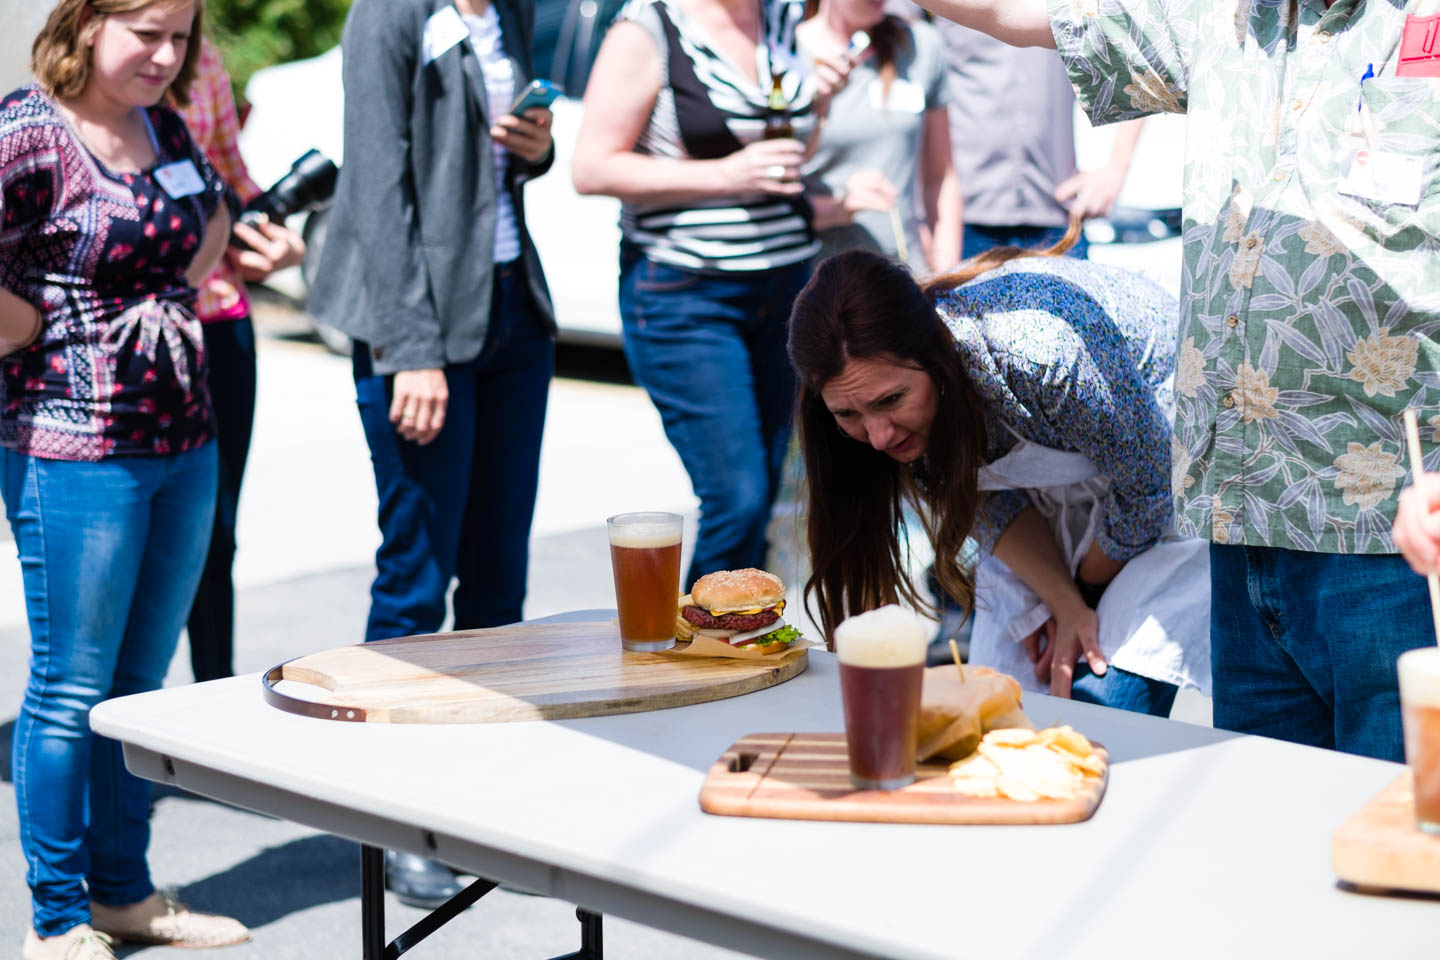 Suzy Eaton judges food styling of hamburgers and beer